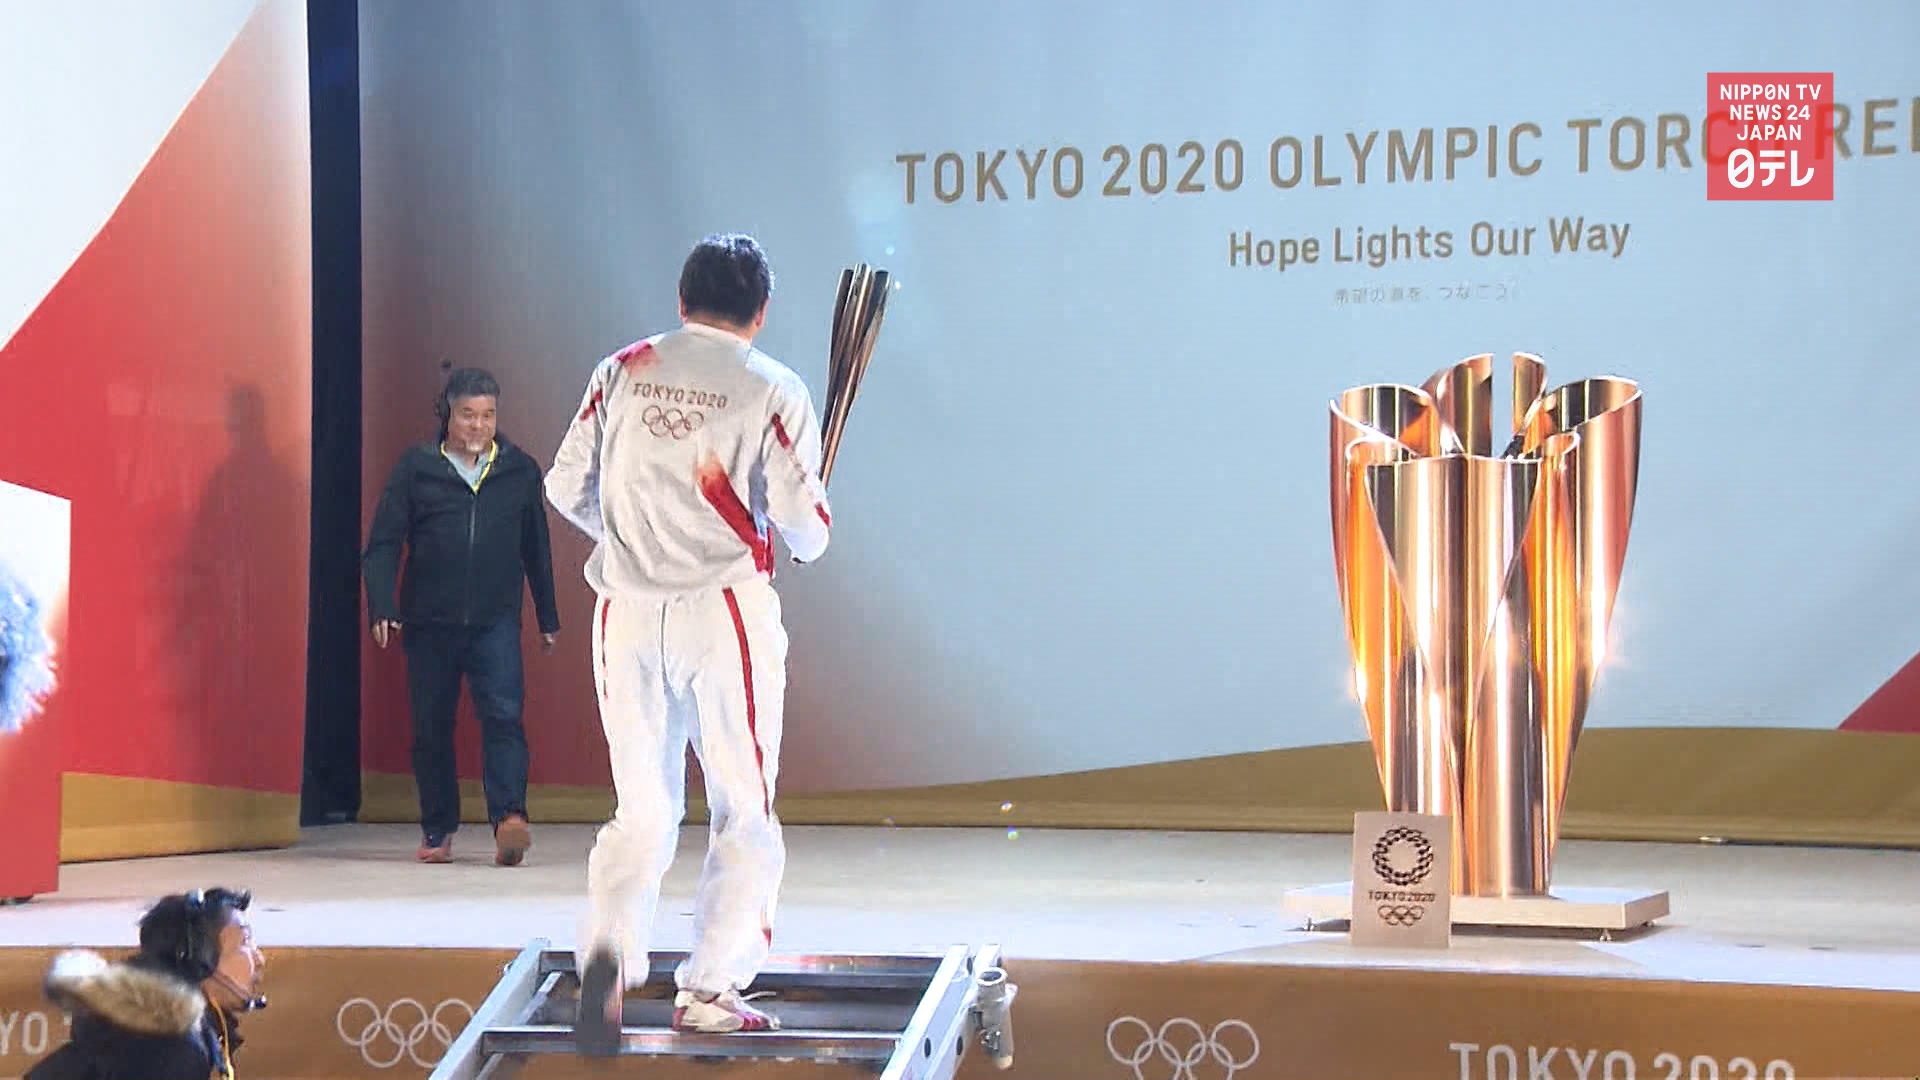 Coronavirus prompts scaling back Olympic torch relay events